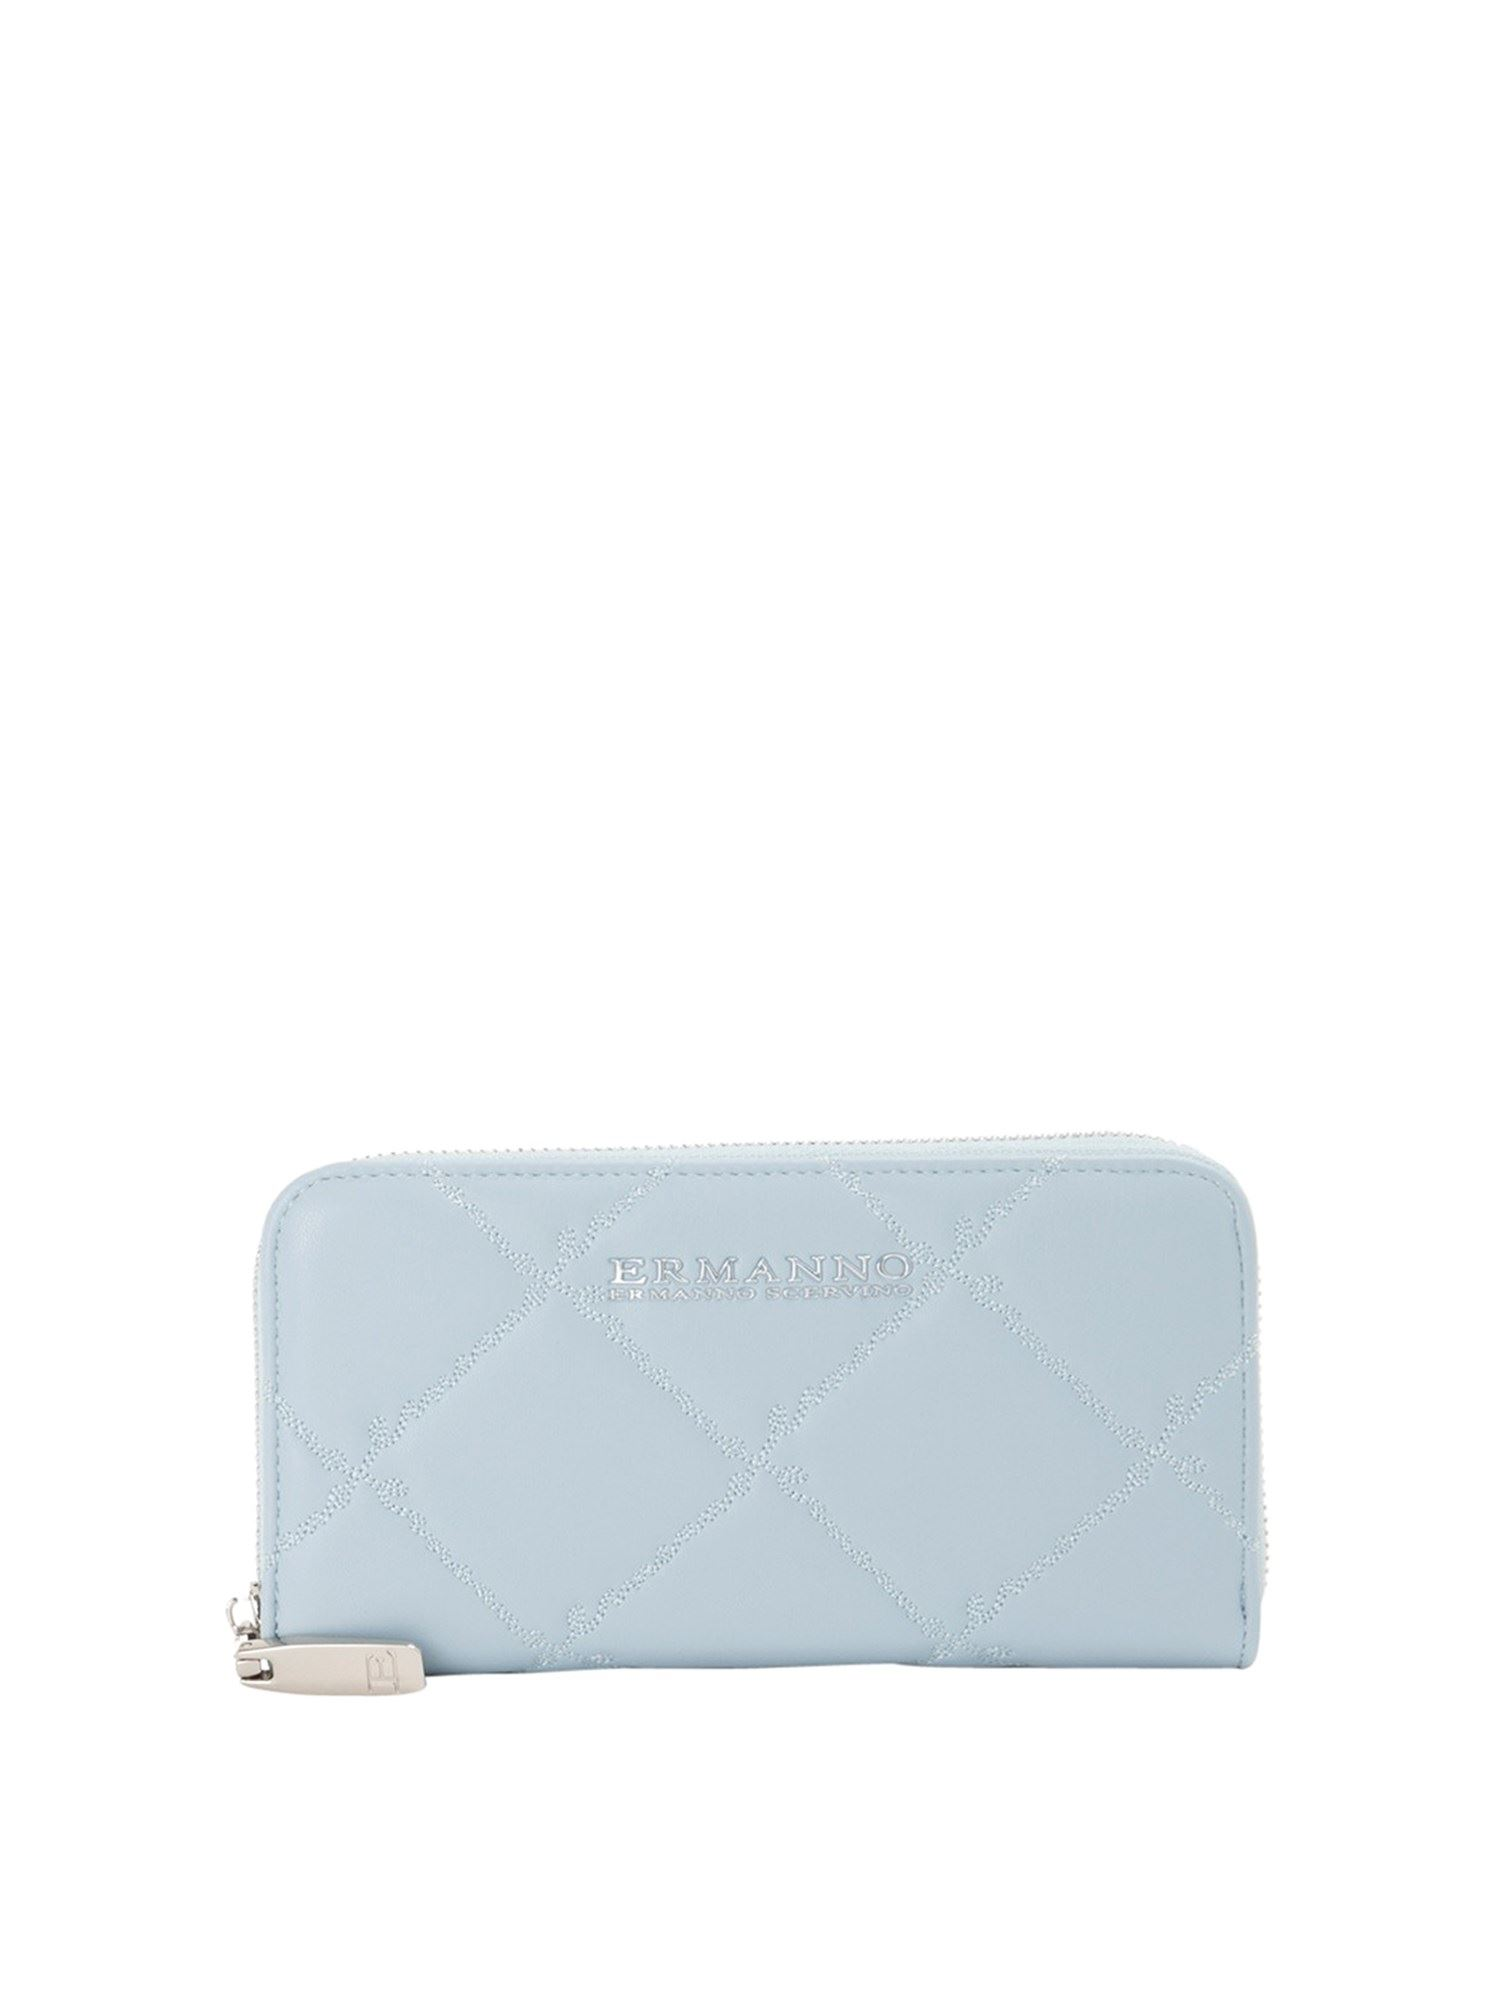 Ermanno Scervino FAUX LEATHER WALLET IN LIGHT BLUE